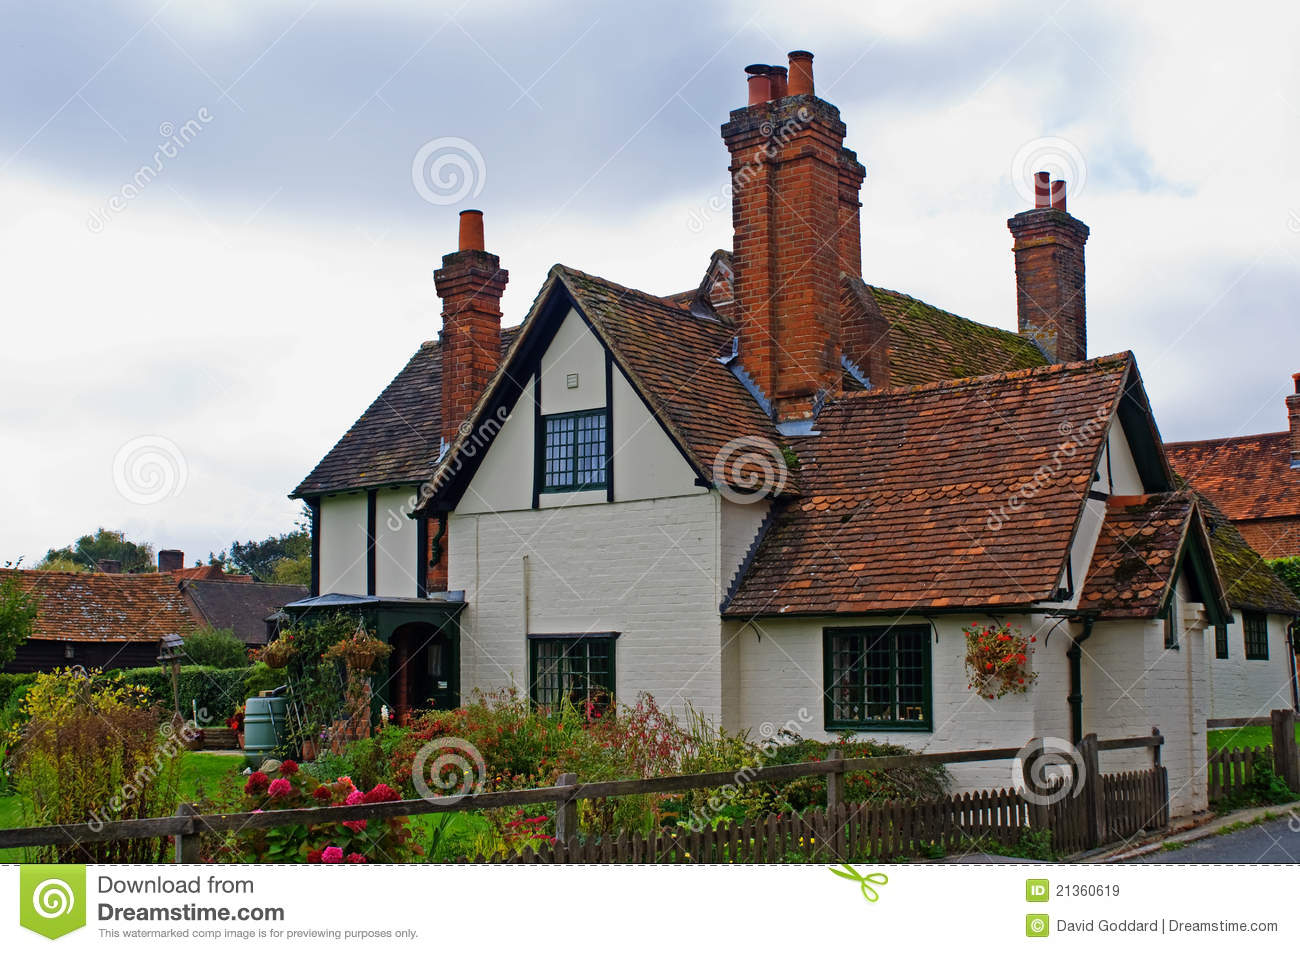 Country house royalty free stock images image 21360619 for Country house online